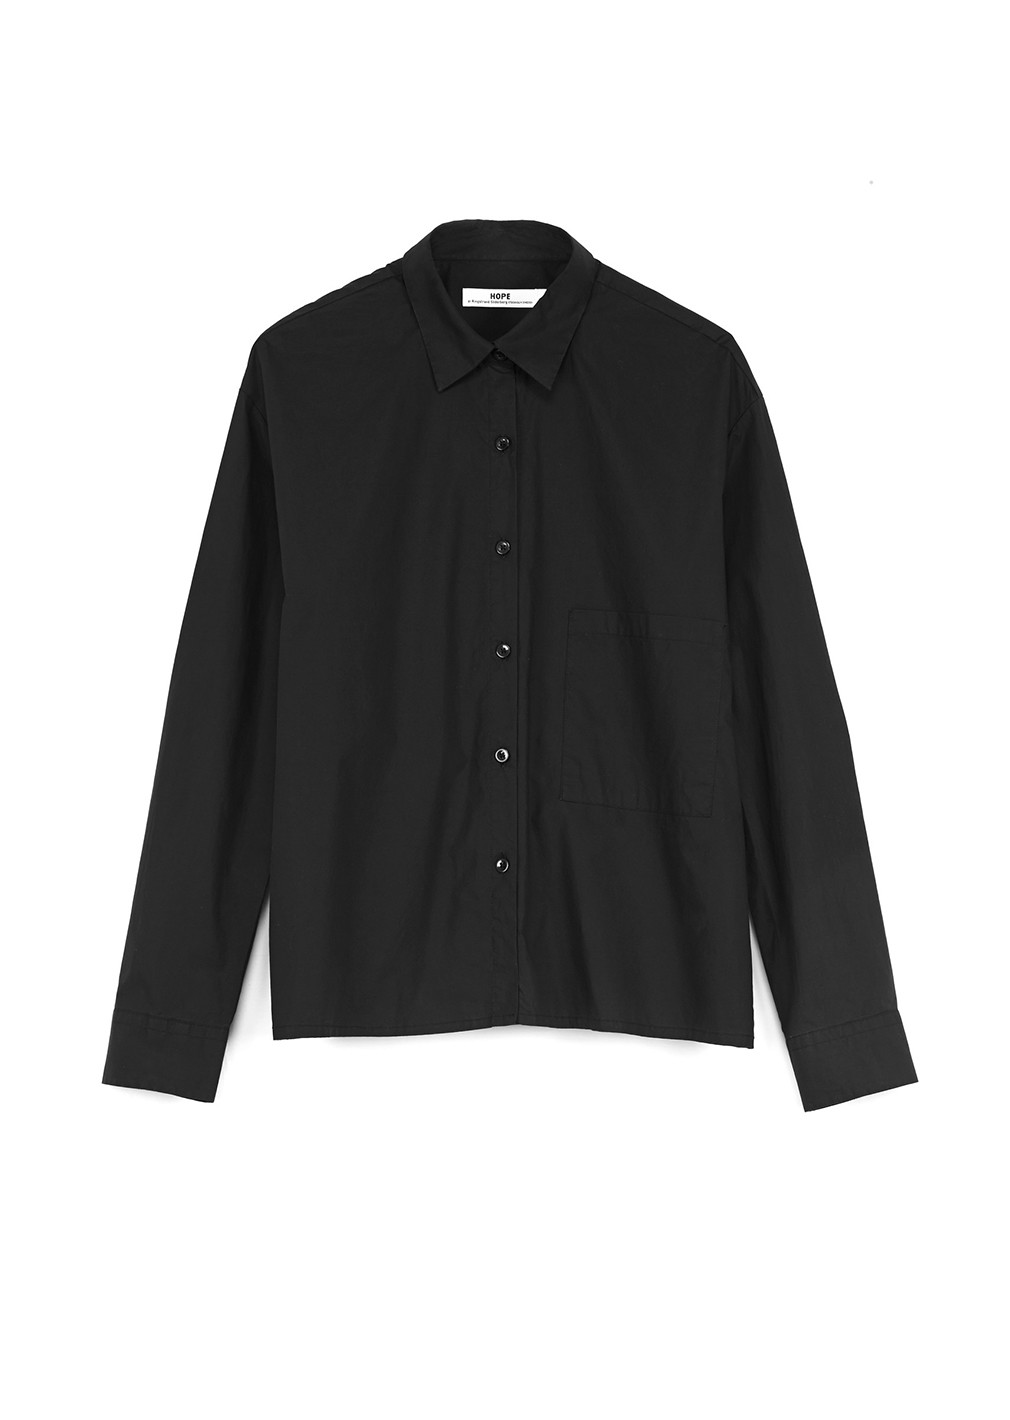 hope-ester-blouse-black-front